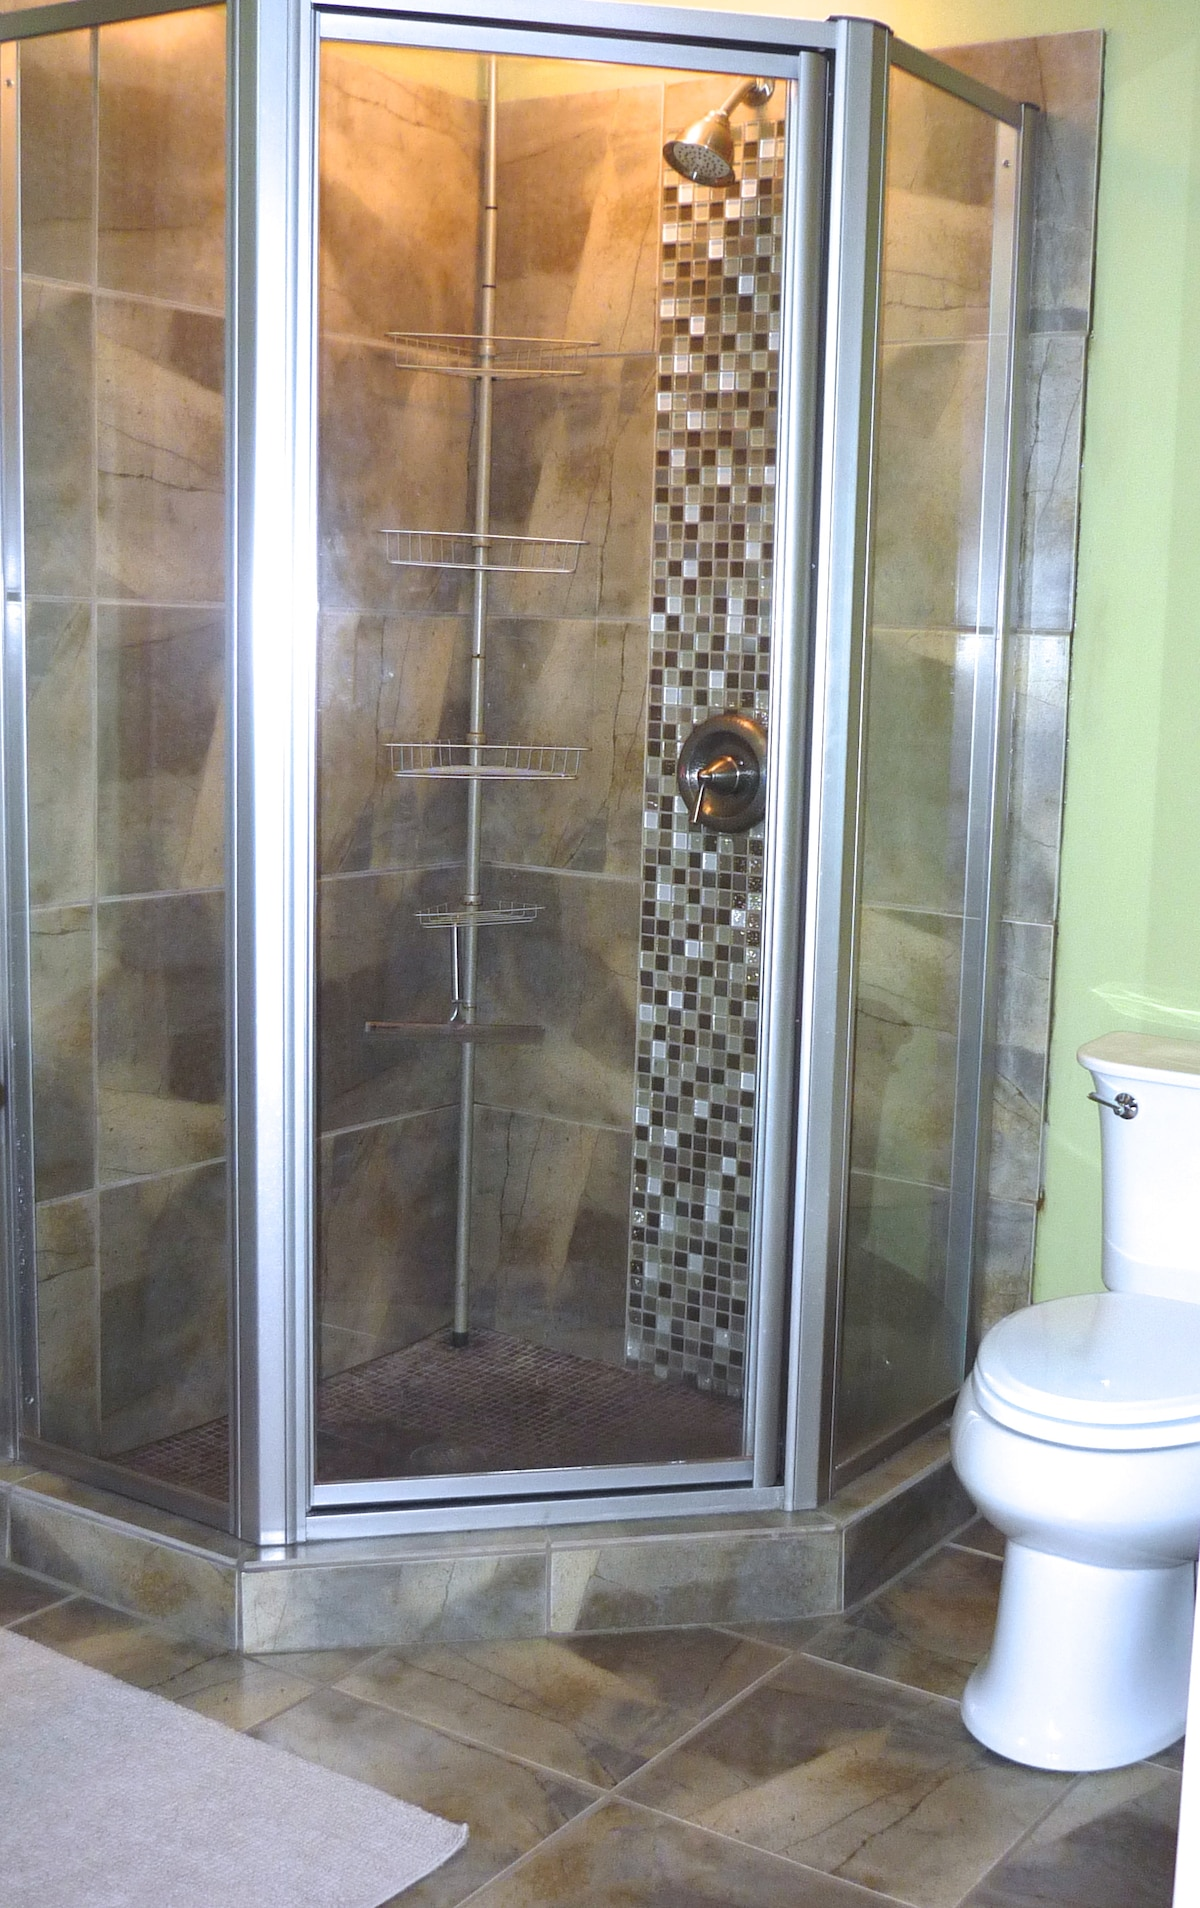 This private master bath is modern, clean and convenient.  Please note: the bathroom has a privacy curtain but no door.